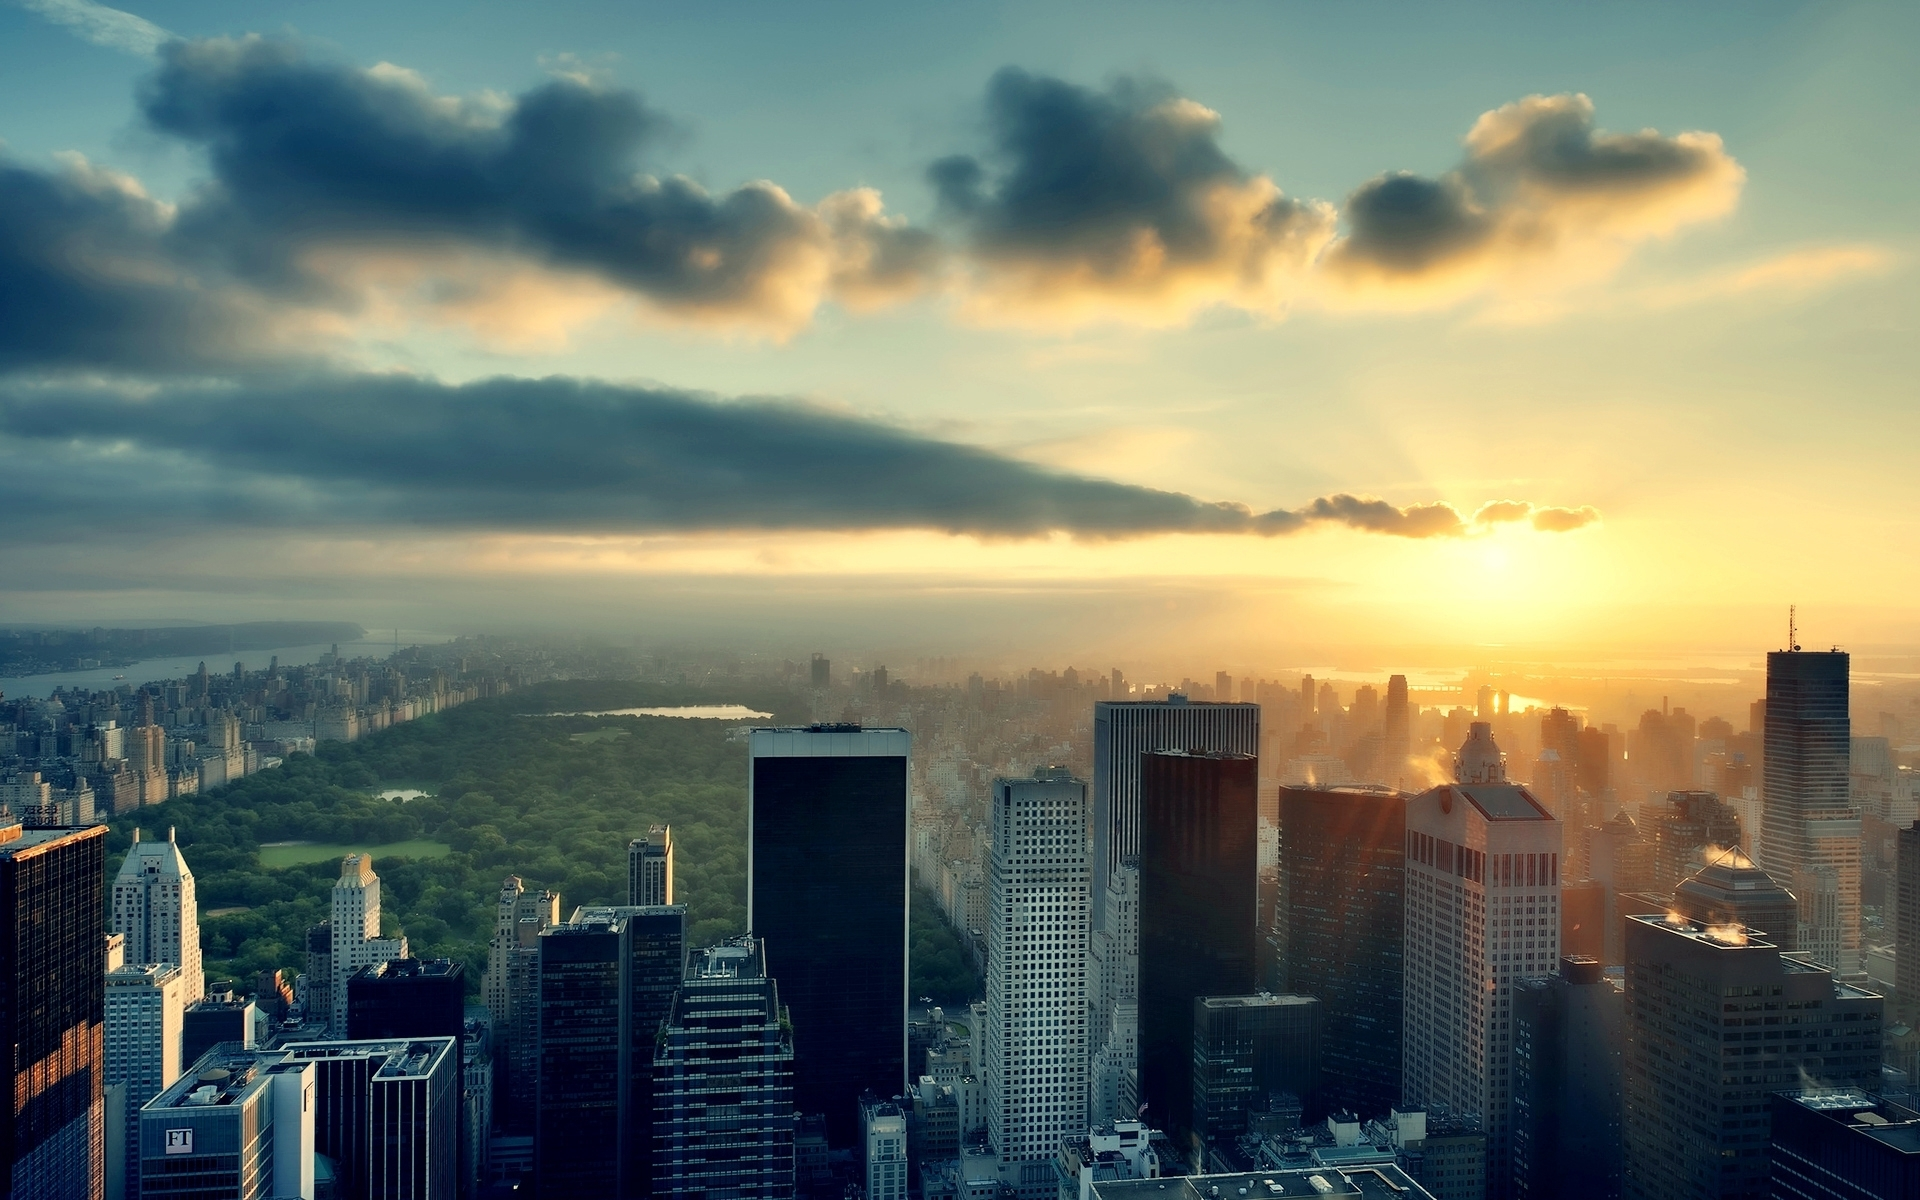 Image: City, New York, skyscrapers, sky, sun, clouds, Central Park